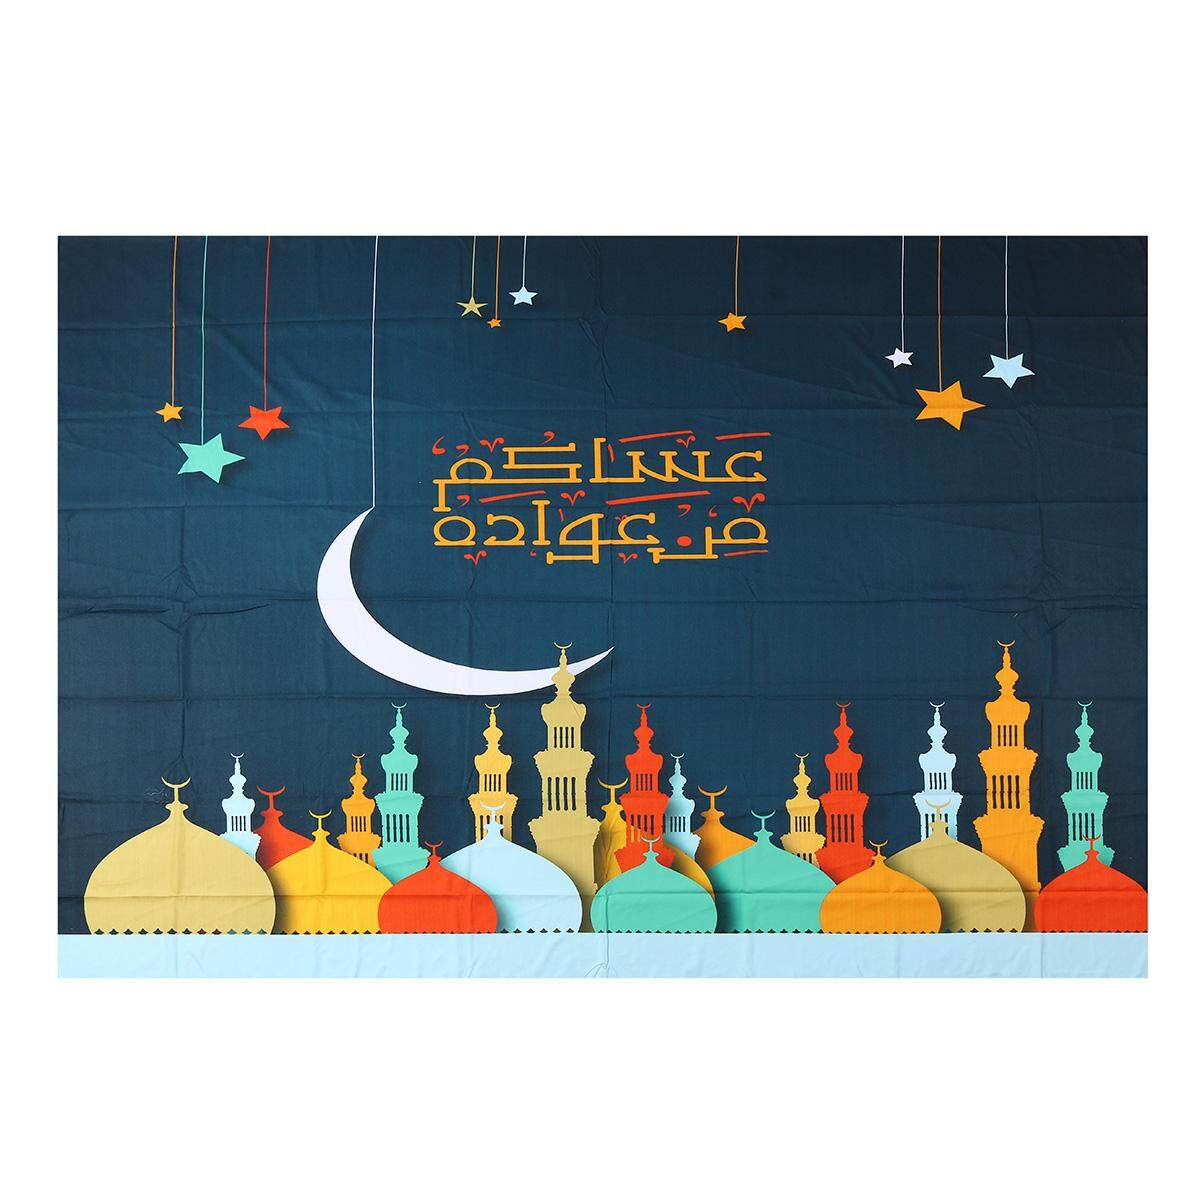 Tapestry Wall Hanging Islamism Eid Mubarak Ramadan Background Home Party Decor 150*200cm/59*78.7